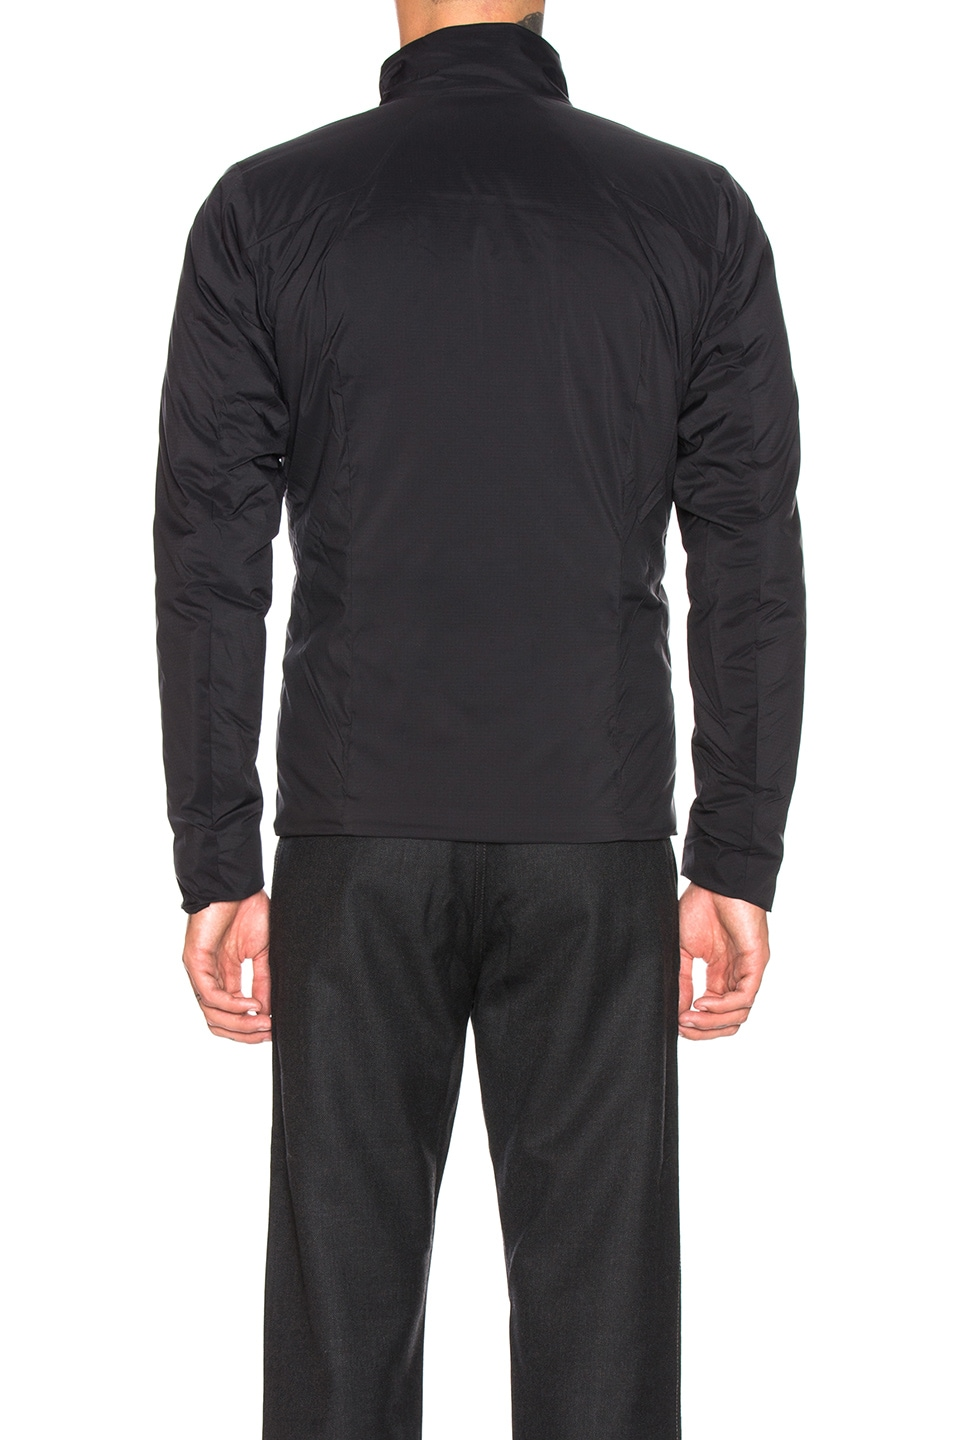 Image 4 of Arc'teryx Veilance Mionn Is Jacket in Black